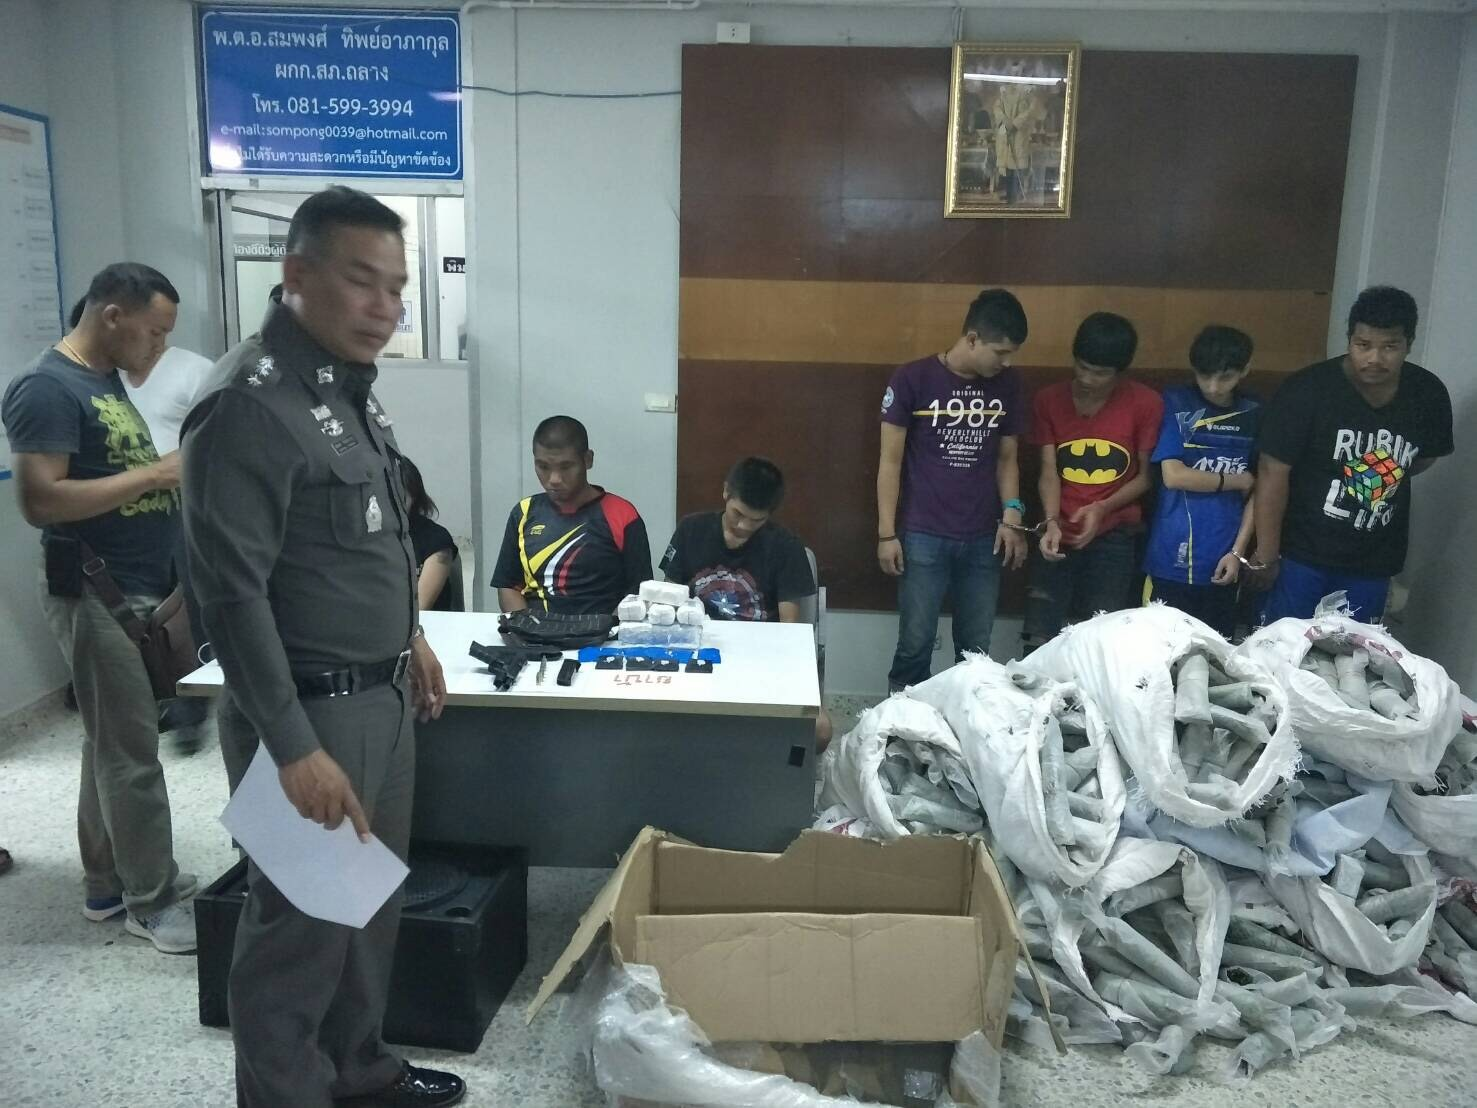 Thalang Police uncover 400+ kilos of drugs | The Thaiger